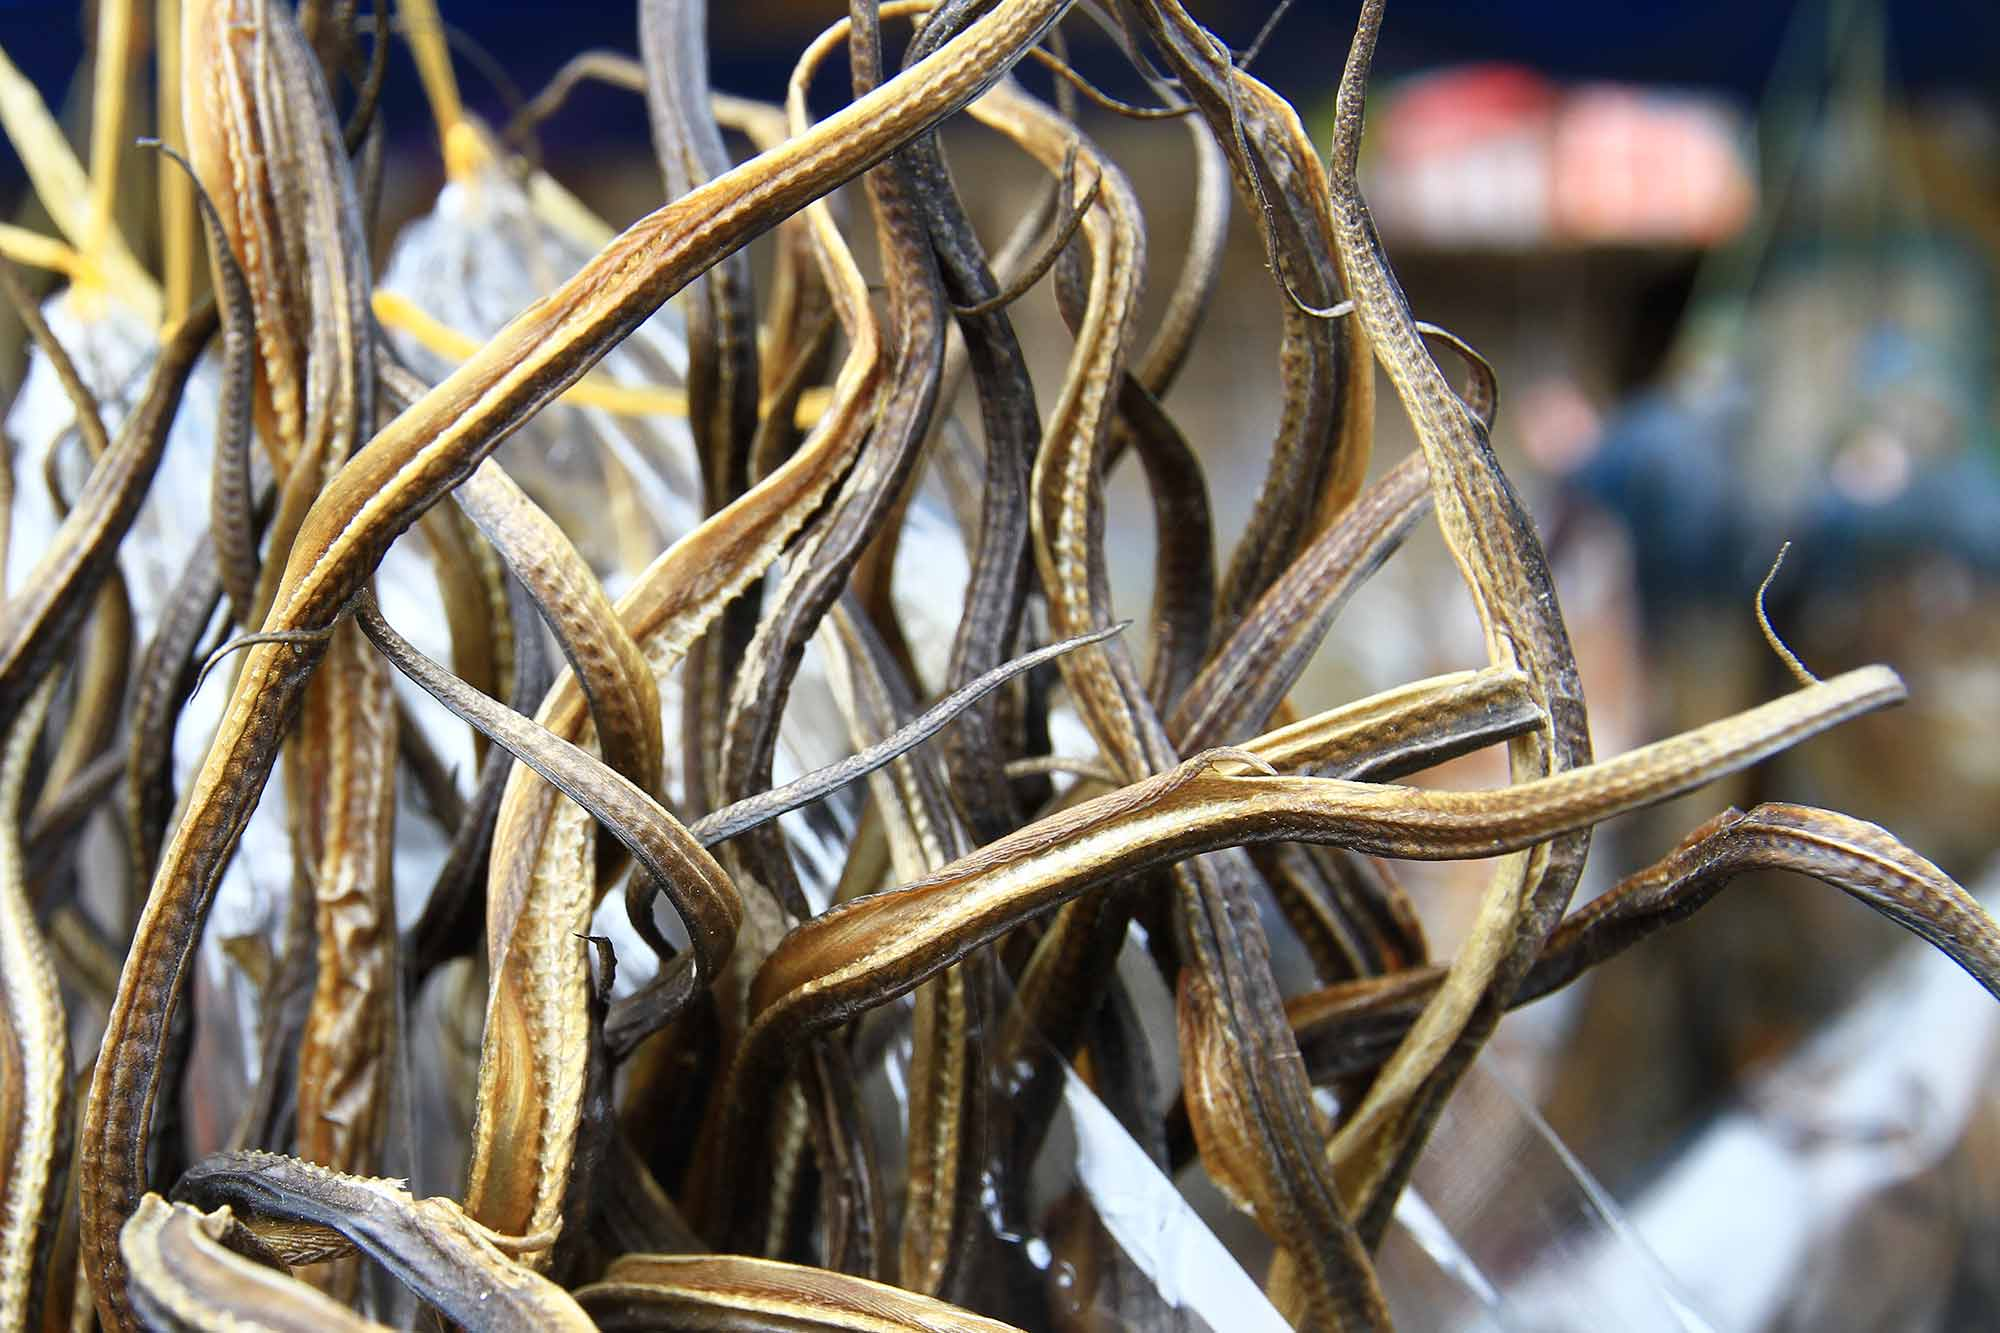 Dried snakes at a market in Bukittinggi, Sumatra. © Ulli Maier & Nisa Maier